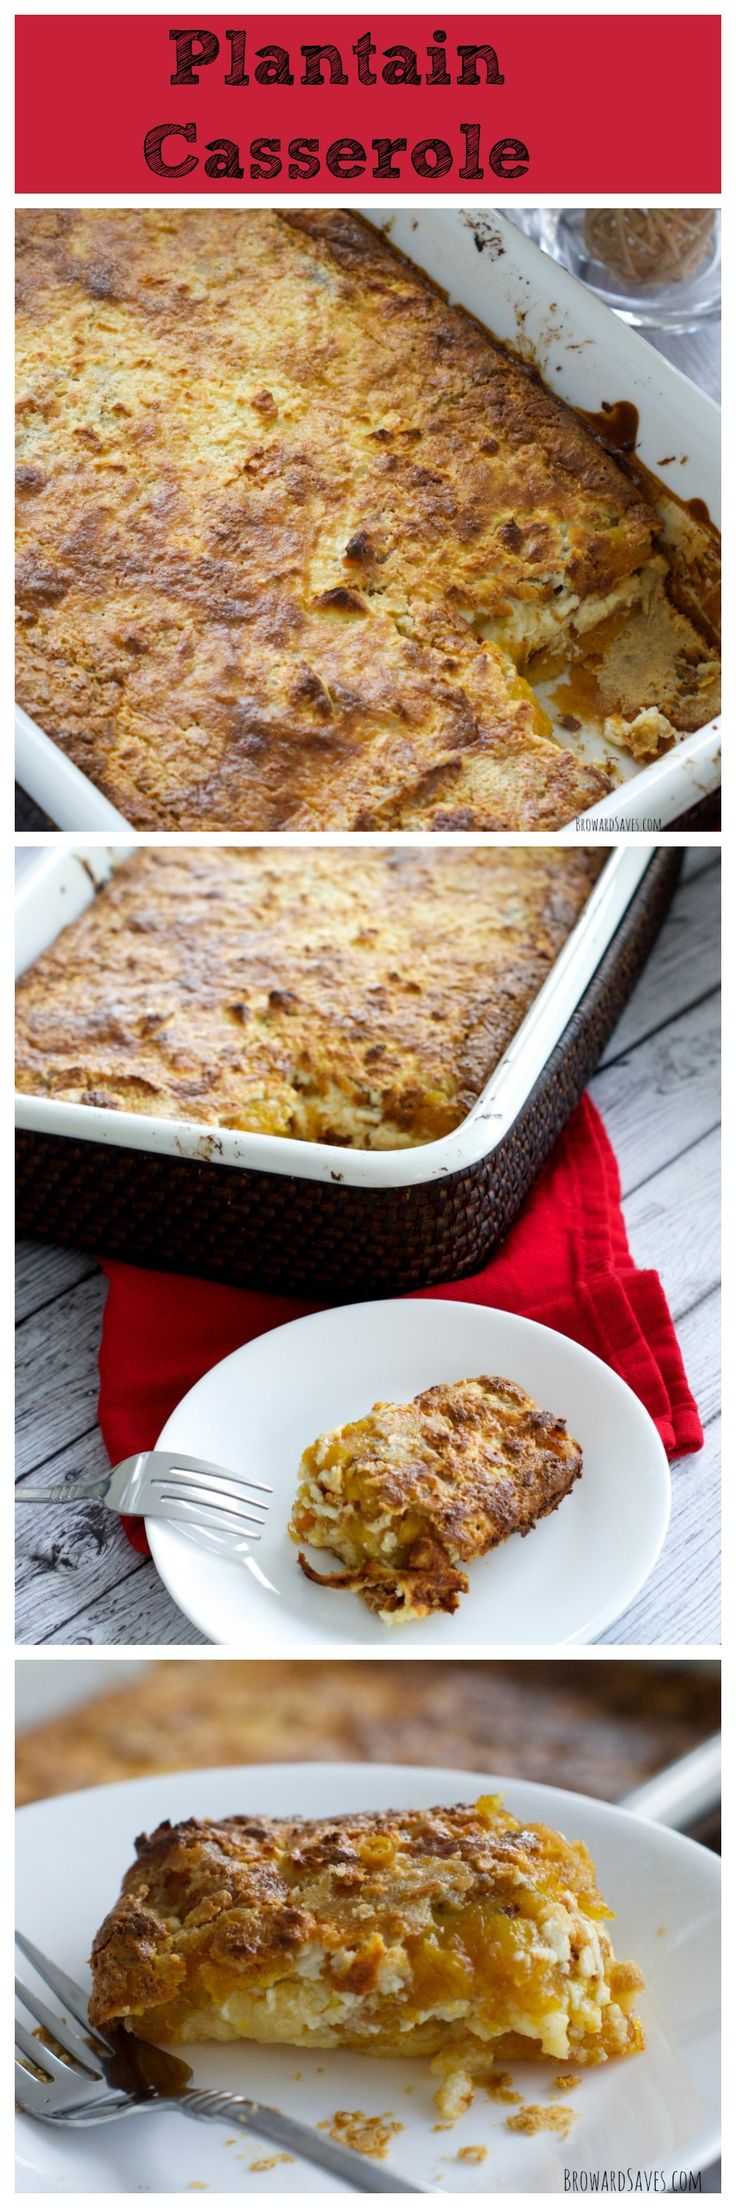 Amazing Plantain Casserole - A sophisticated side dish for any meal. Plus learn the secret that makes these so easy to make!